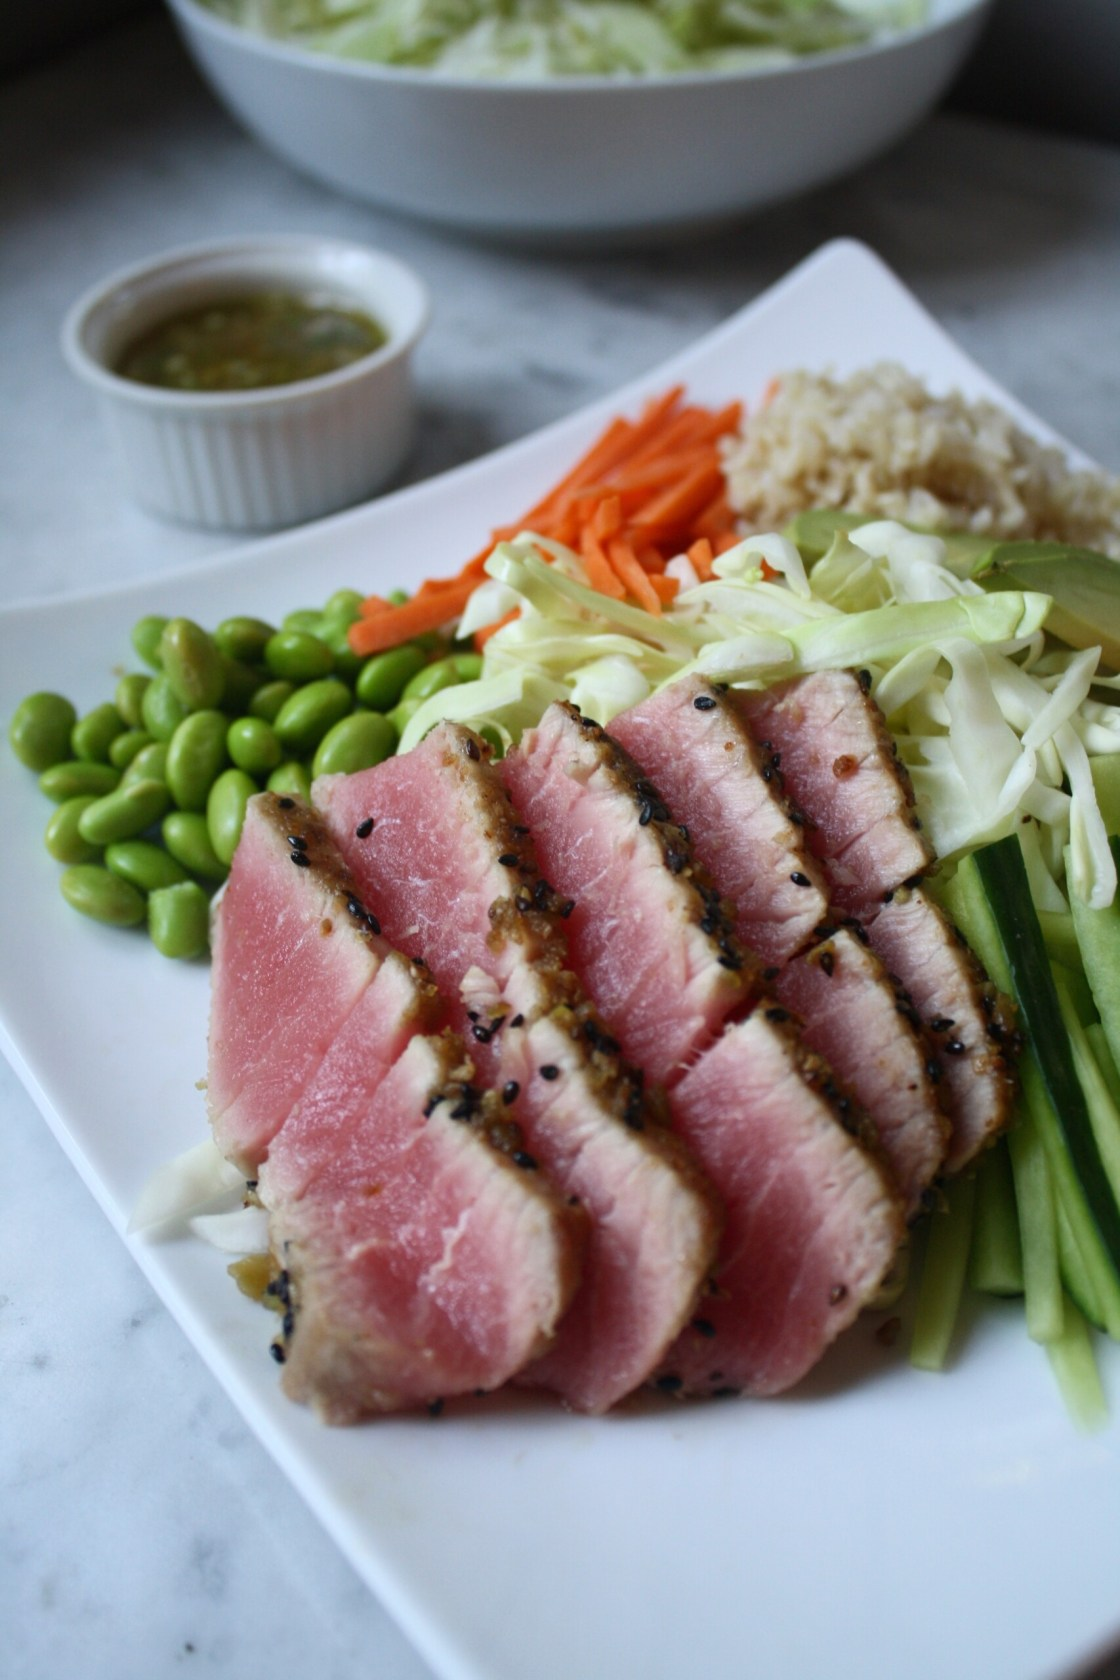 Wasabi Crusted Ahi Tuna set on a plate with edamame, carrots, rice and cabbage | Zestful Kitchen